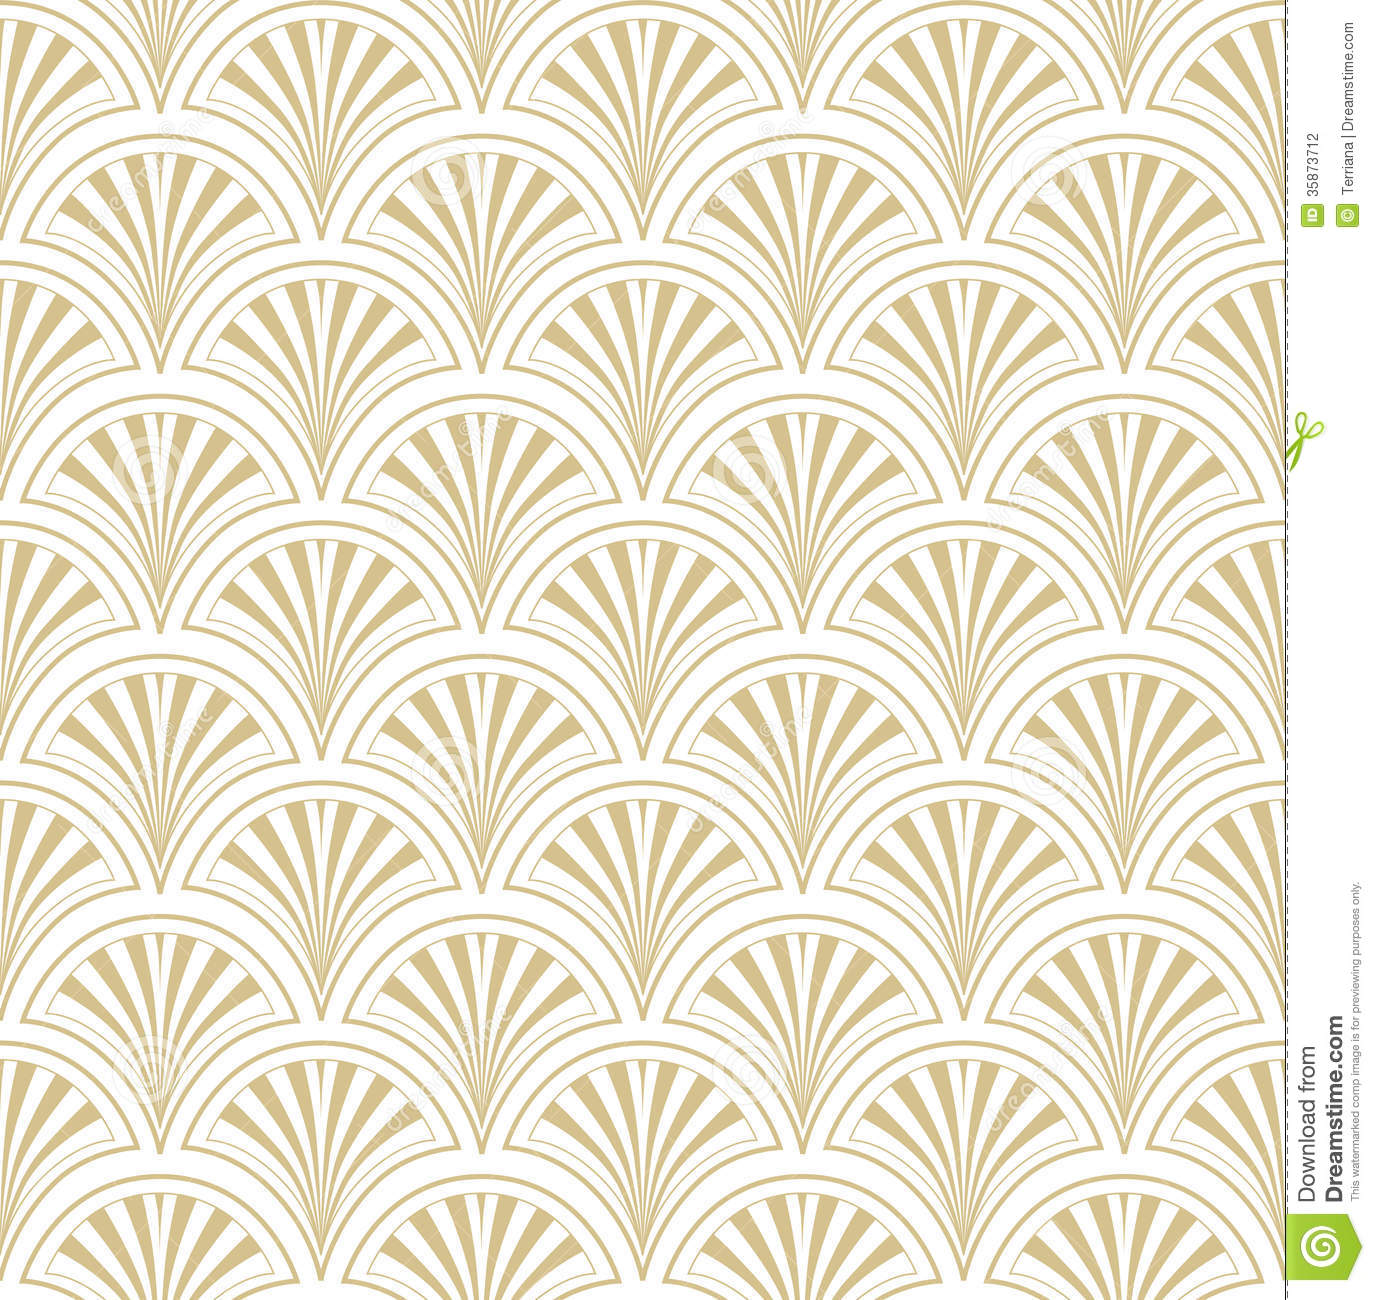 Green and white floral pattern - photo#54